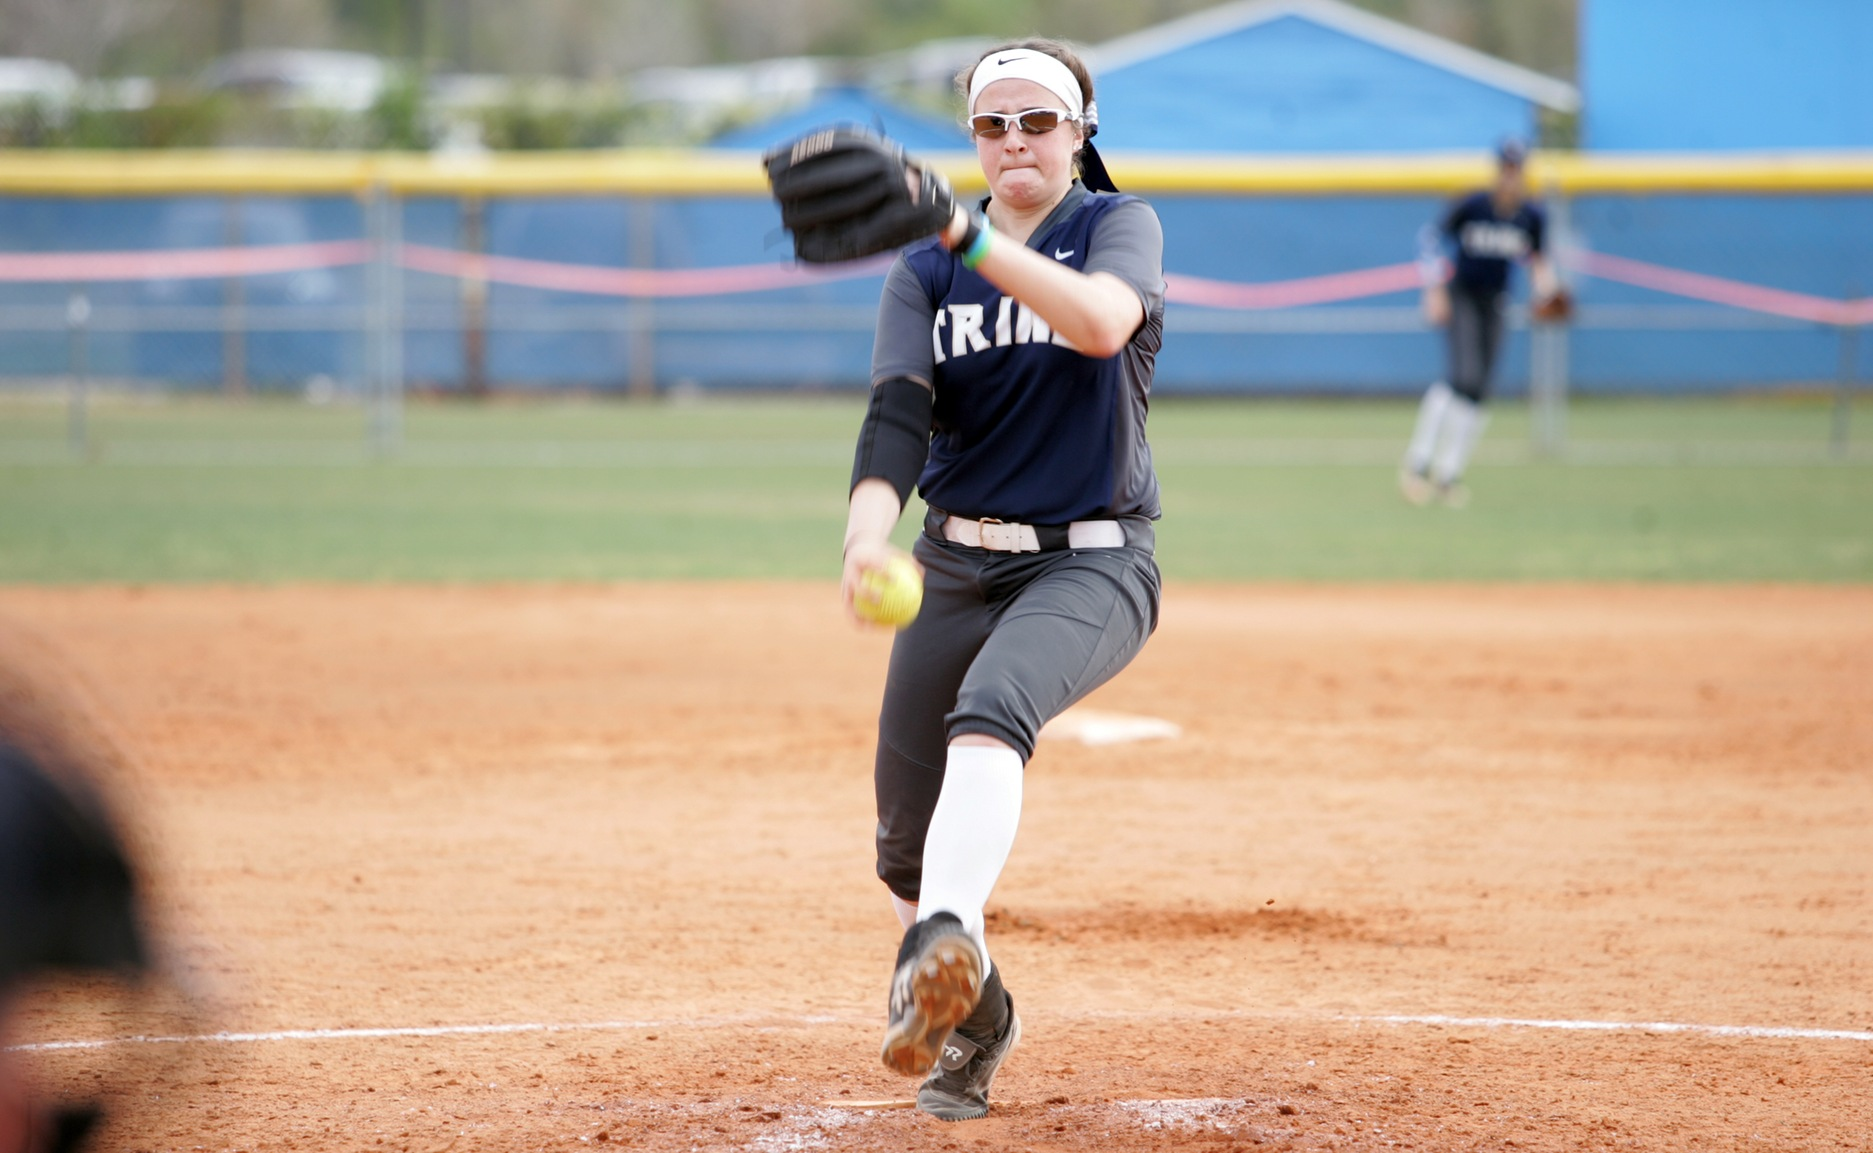 Ray Named MIAA Pitcher of the Week